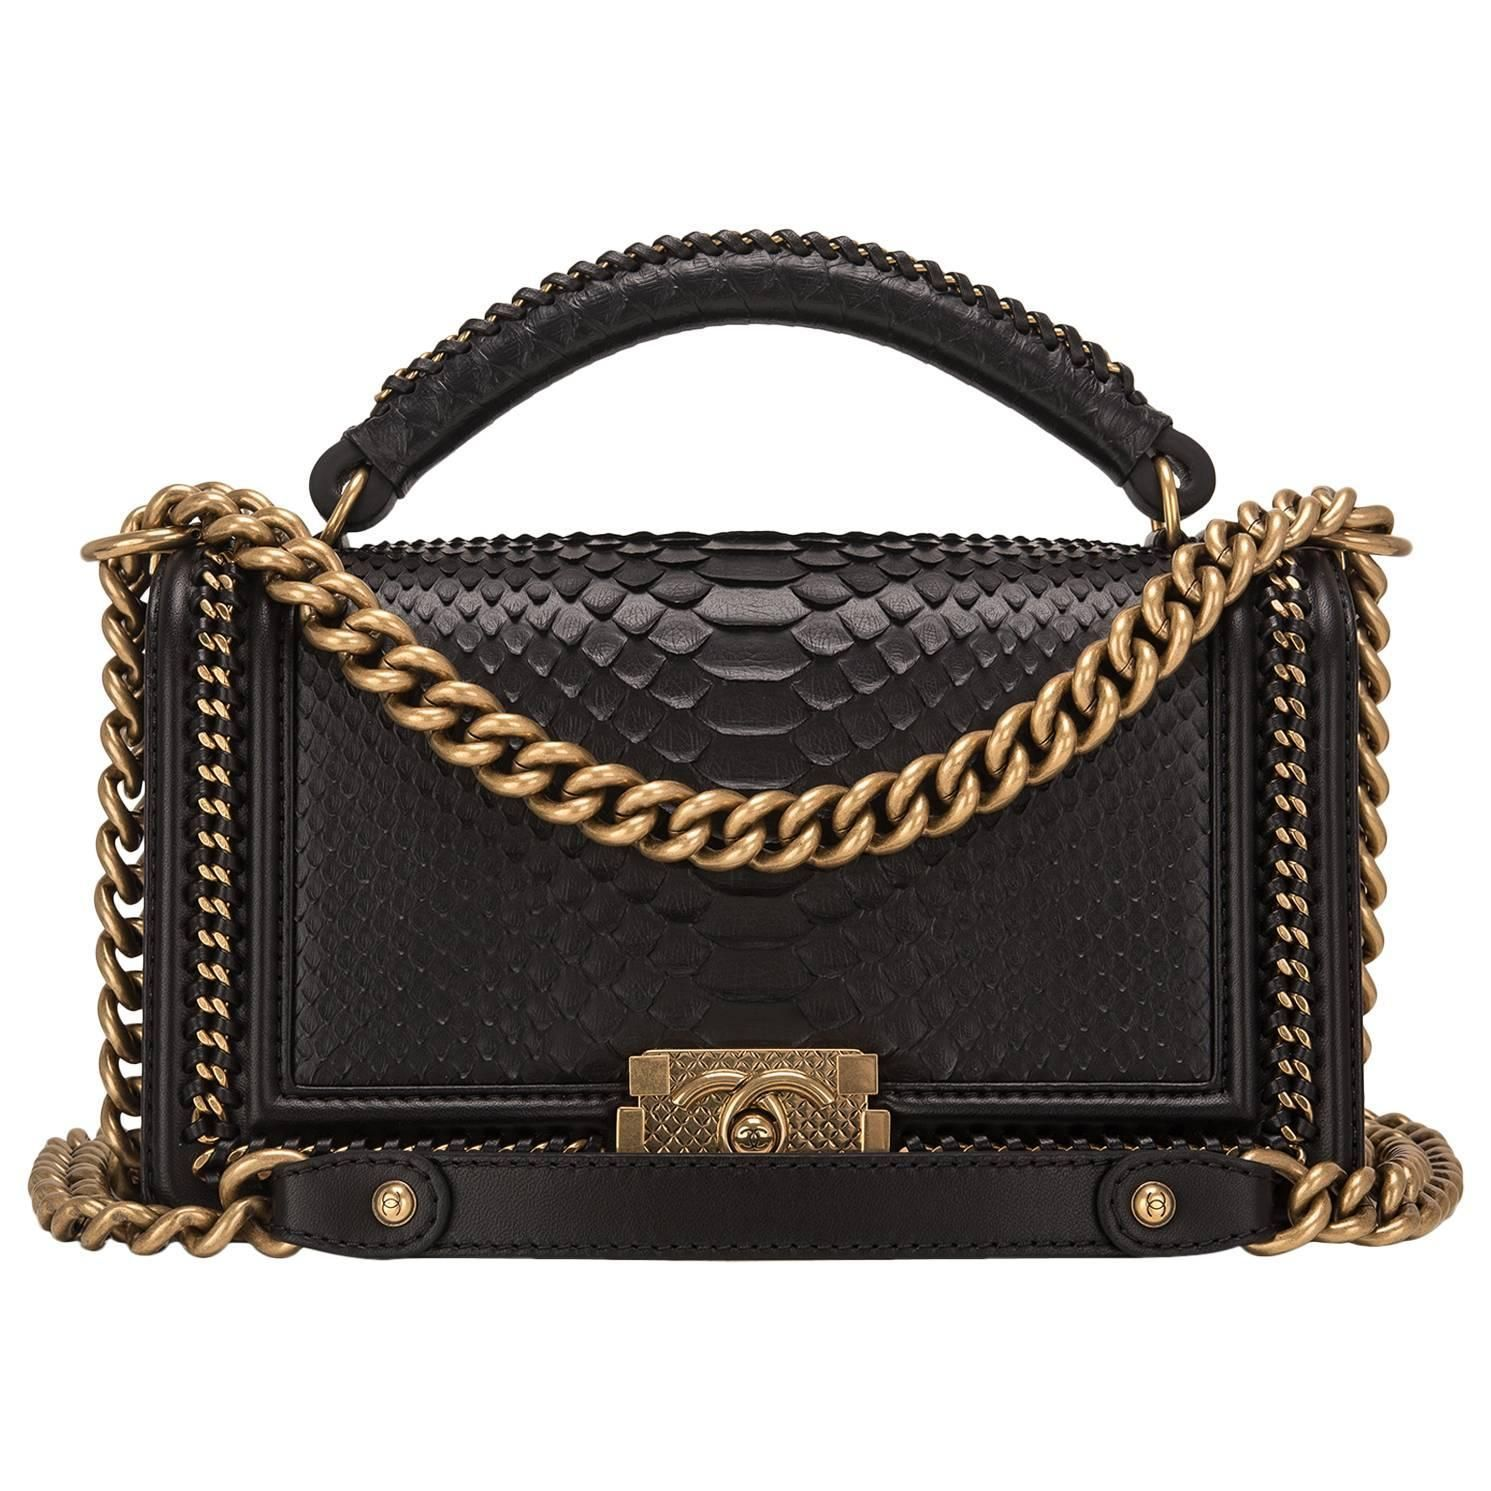 7133e4b69690 Chanel Black Python Medium Boy Bag with Handle | My 1stdibs ...